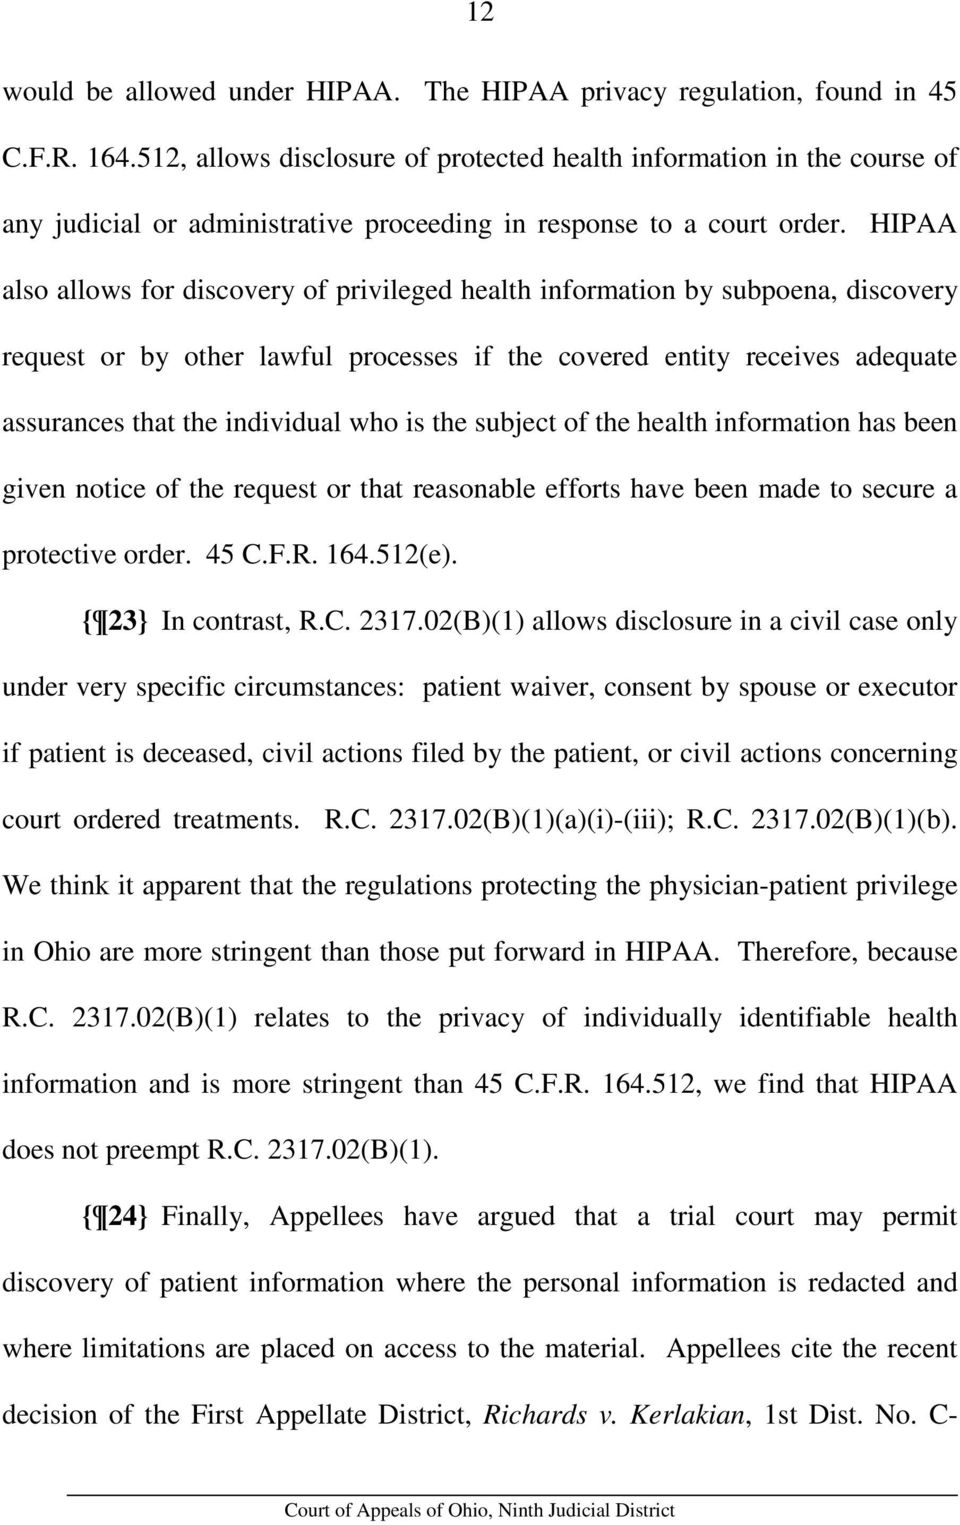 HIPAA also allows for discovery of privileged health information by subpoena, discovery request or by other lawful processes if the covered entity receives adequate assurances that the individual who